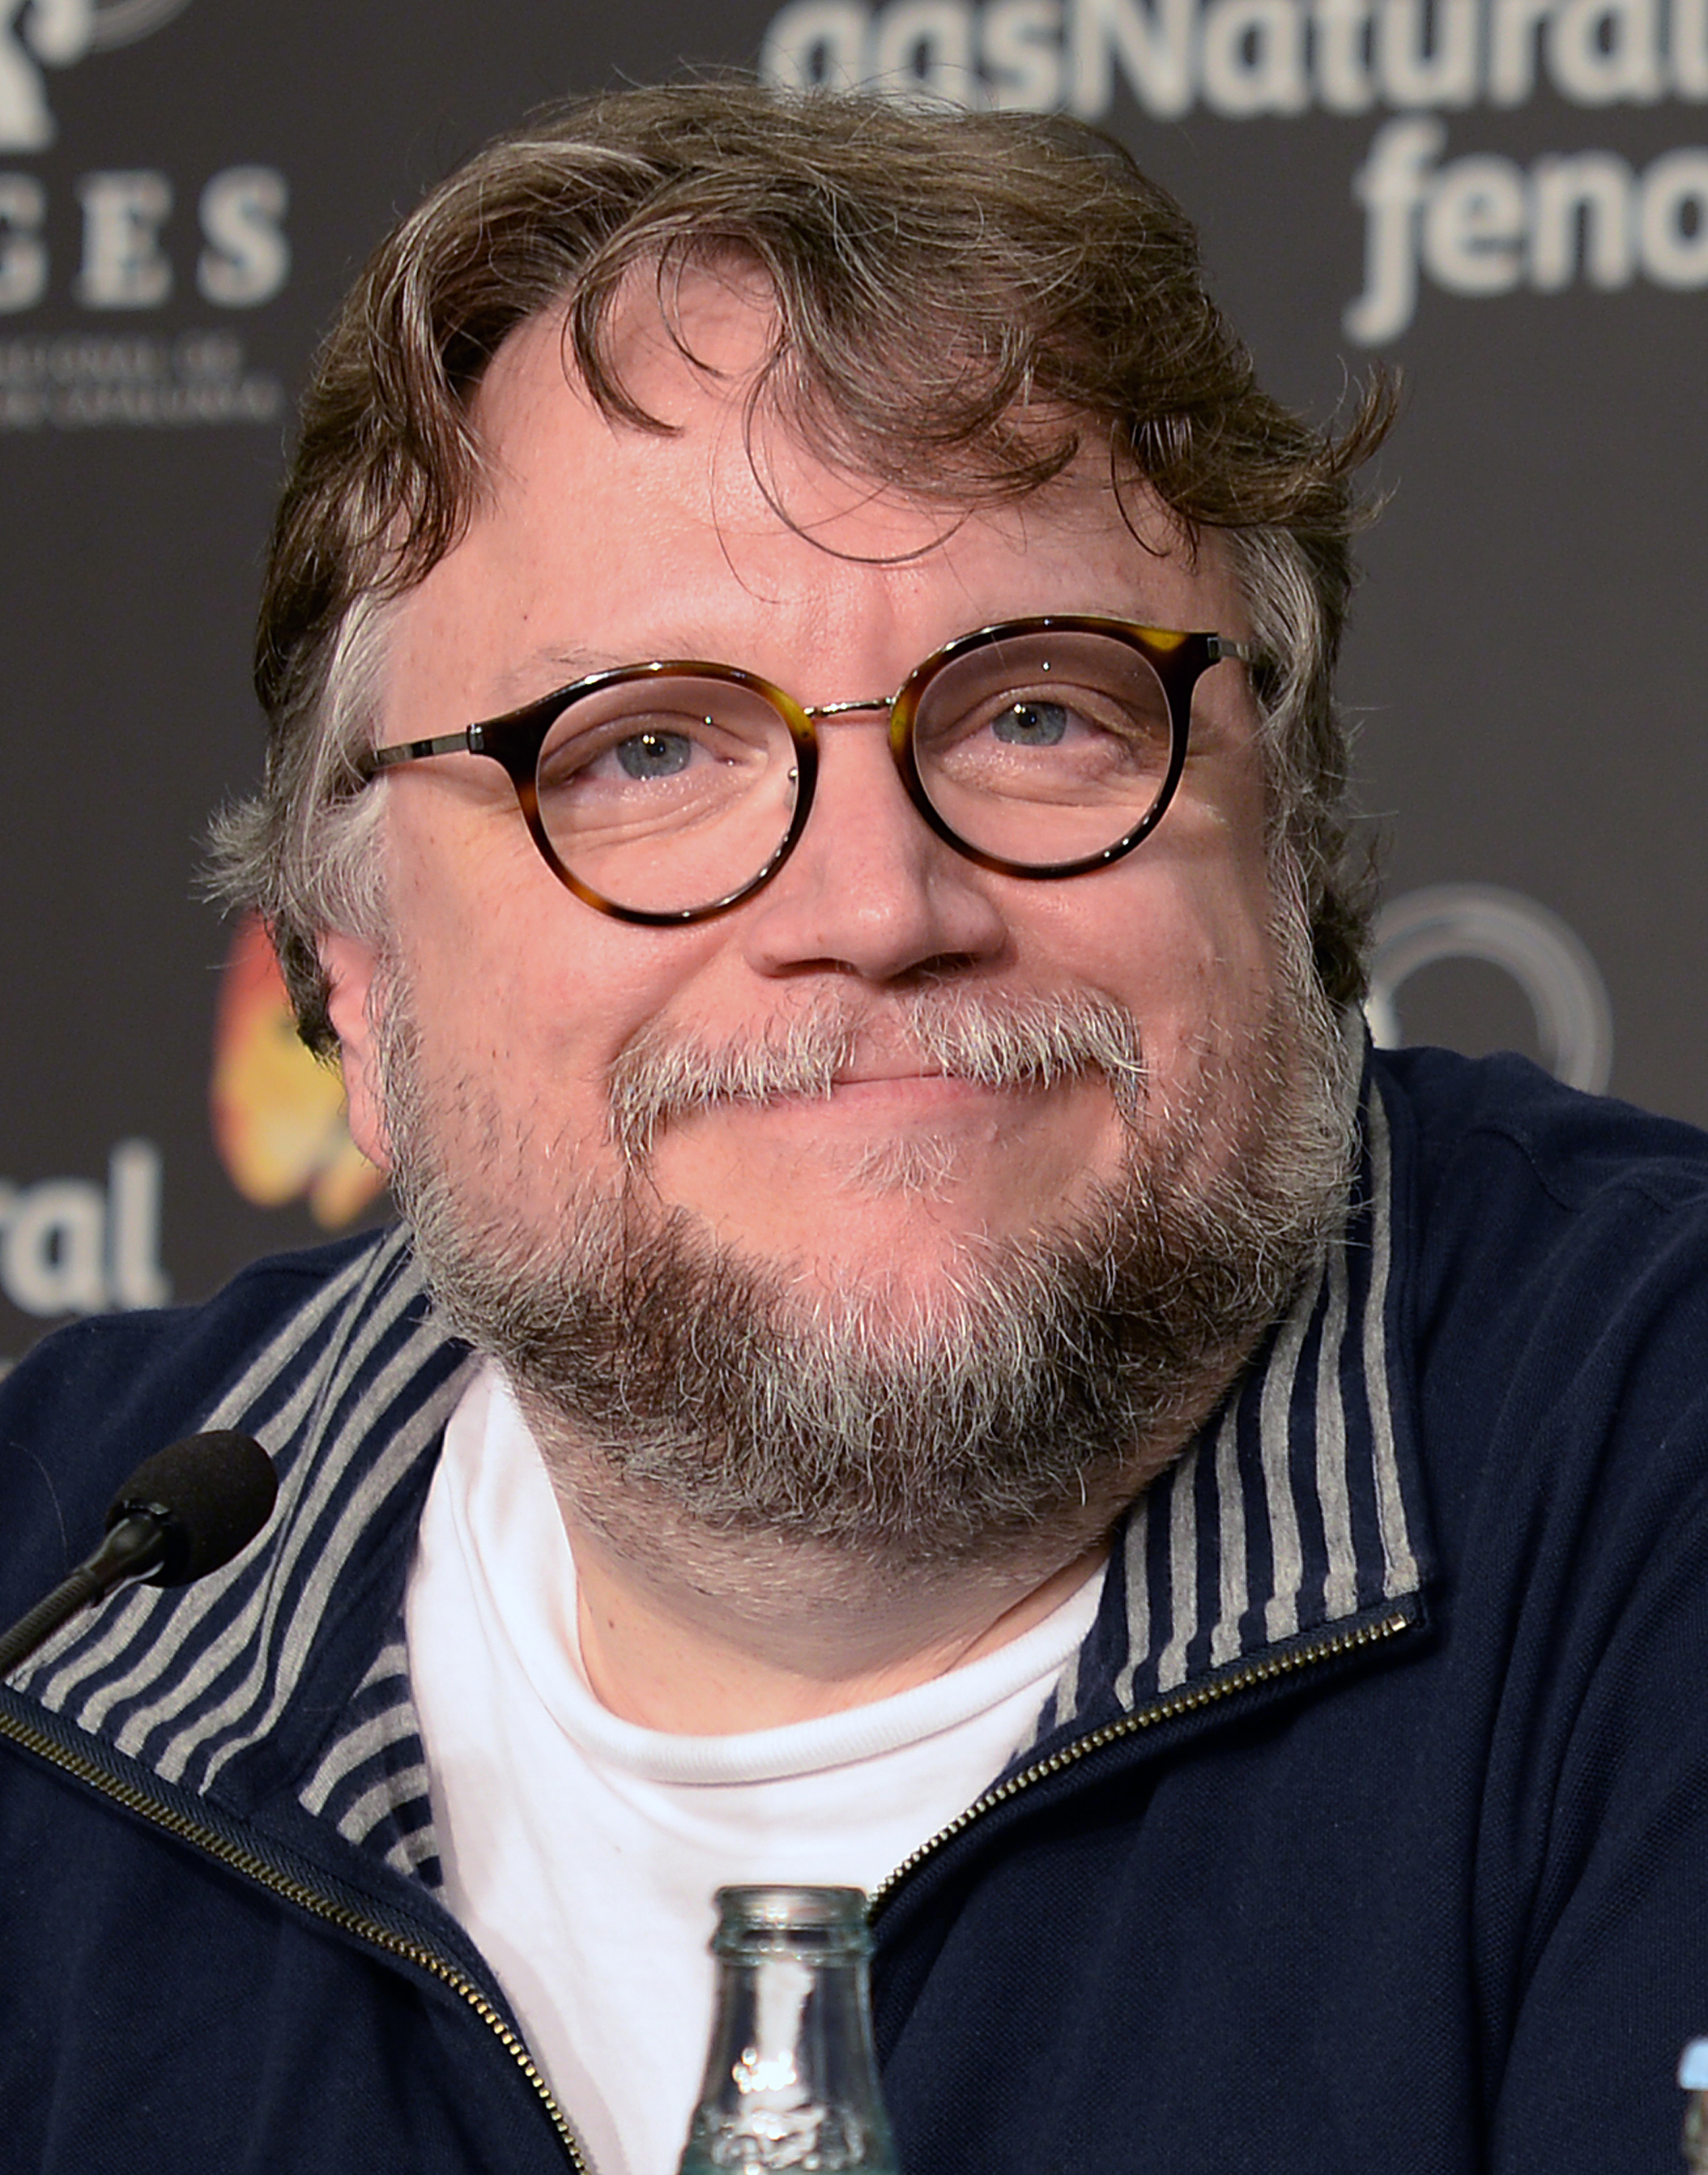 Guillermo Del Toro Wikipedia Never miss another show from vanessa arevalo. guillermo del toro wikipedia